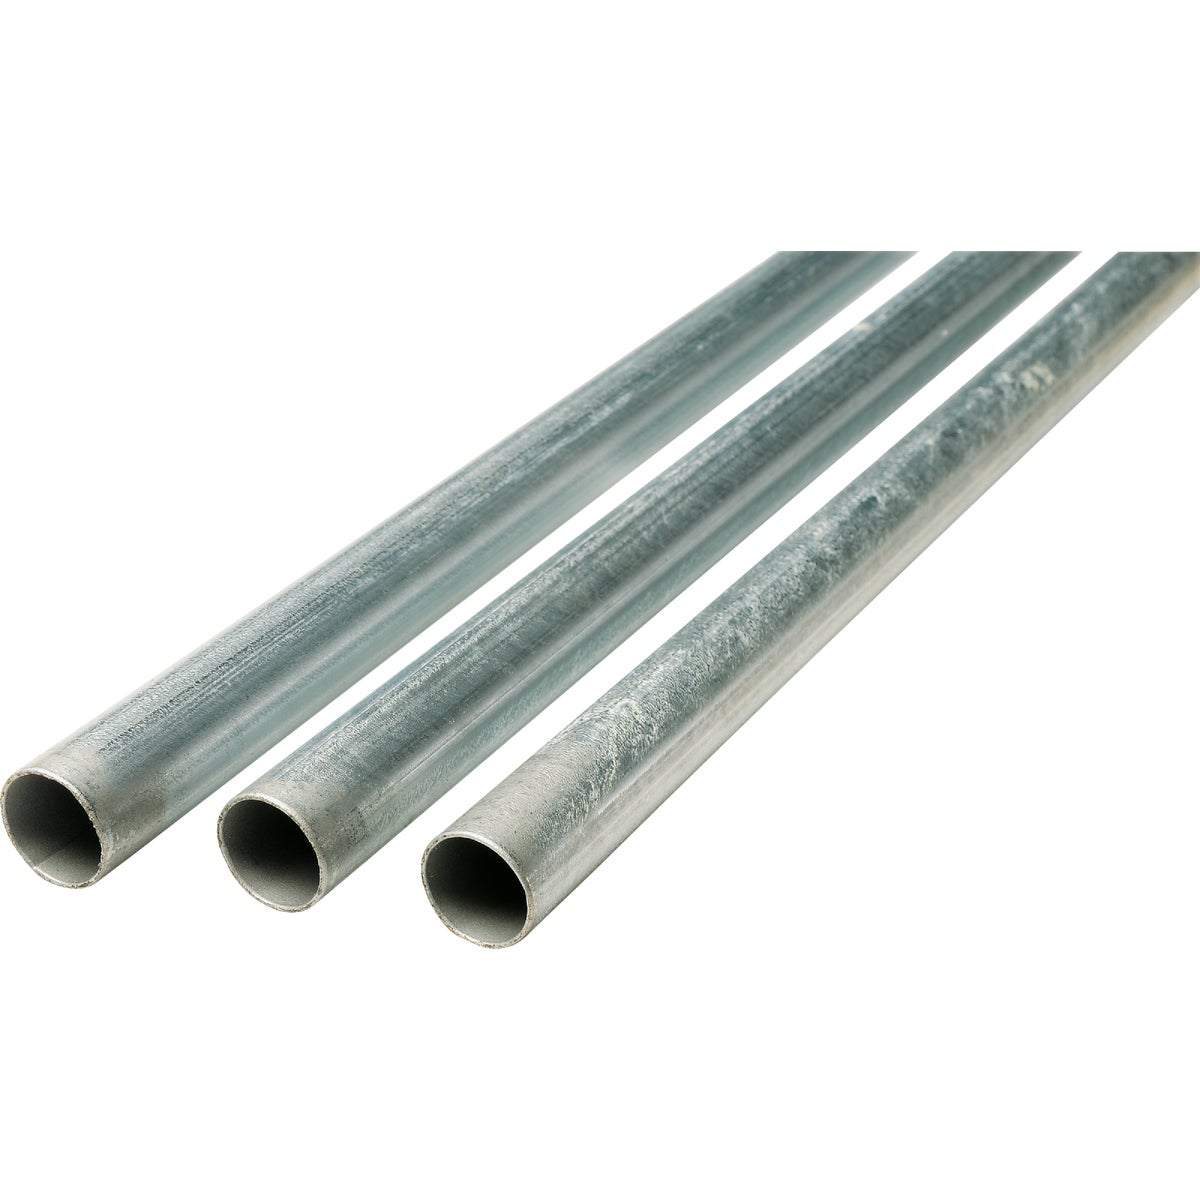 "1-1/2"" EMT CONDUIT - 101584 by Allied Tube  Atkore"